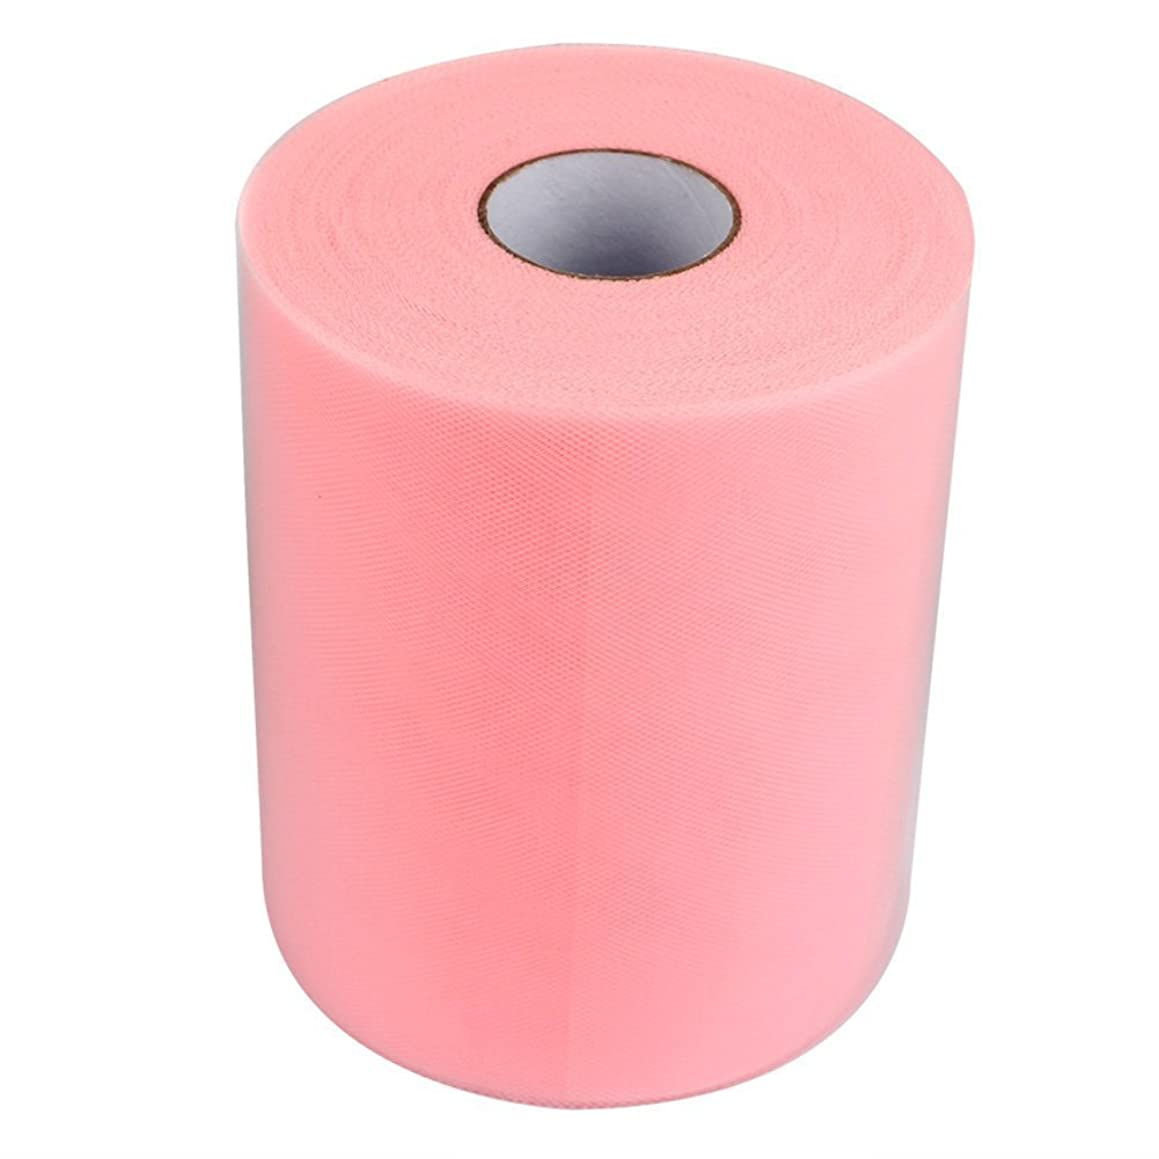 OneD 6 Inch x 100 Yards (300FT) Tulle Roll Spool Tutu Skirt Fabric Wedding Party Gift Bow Craft (Pink)